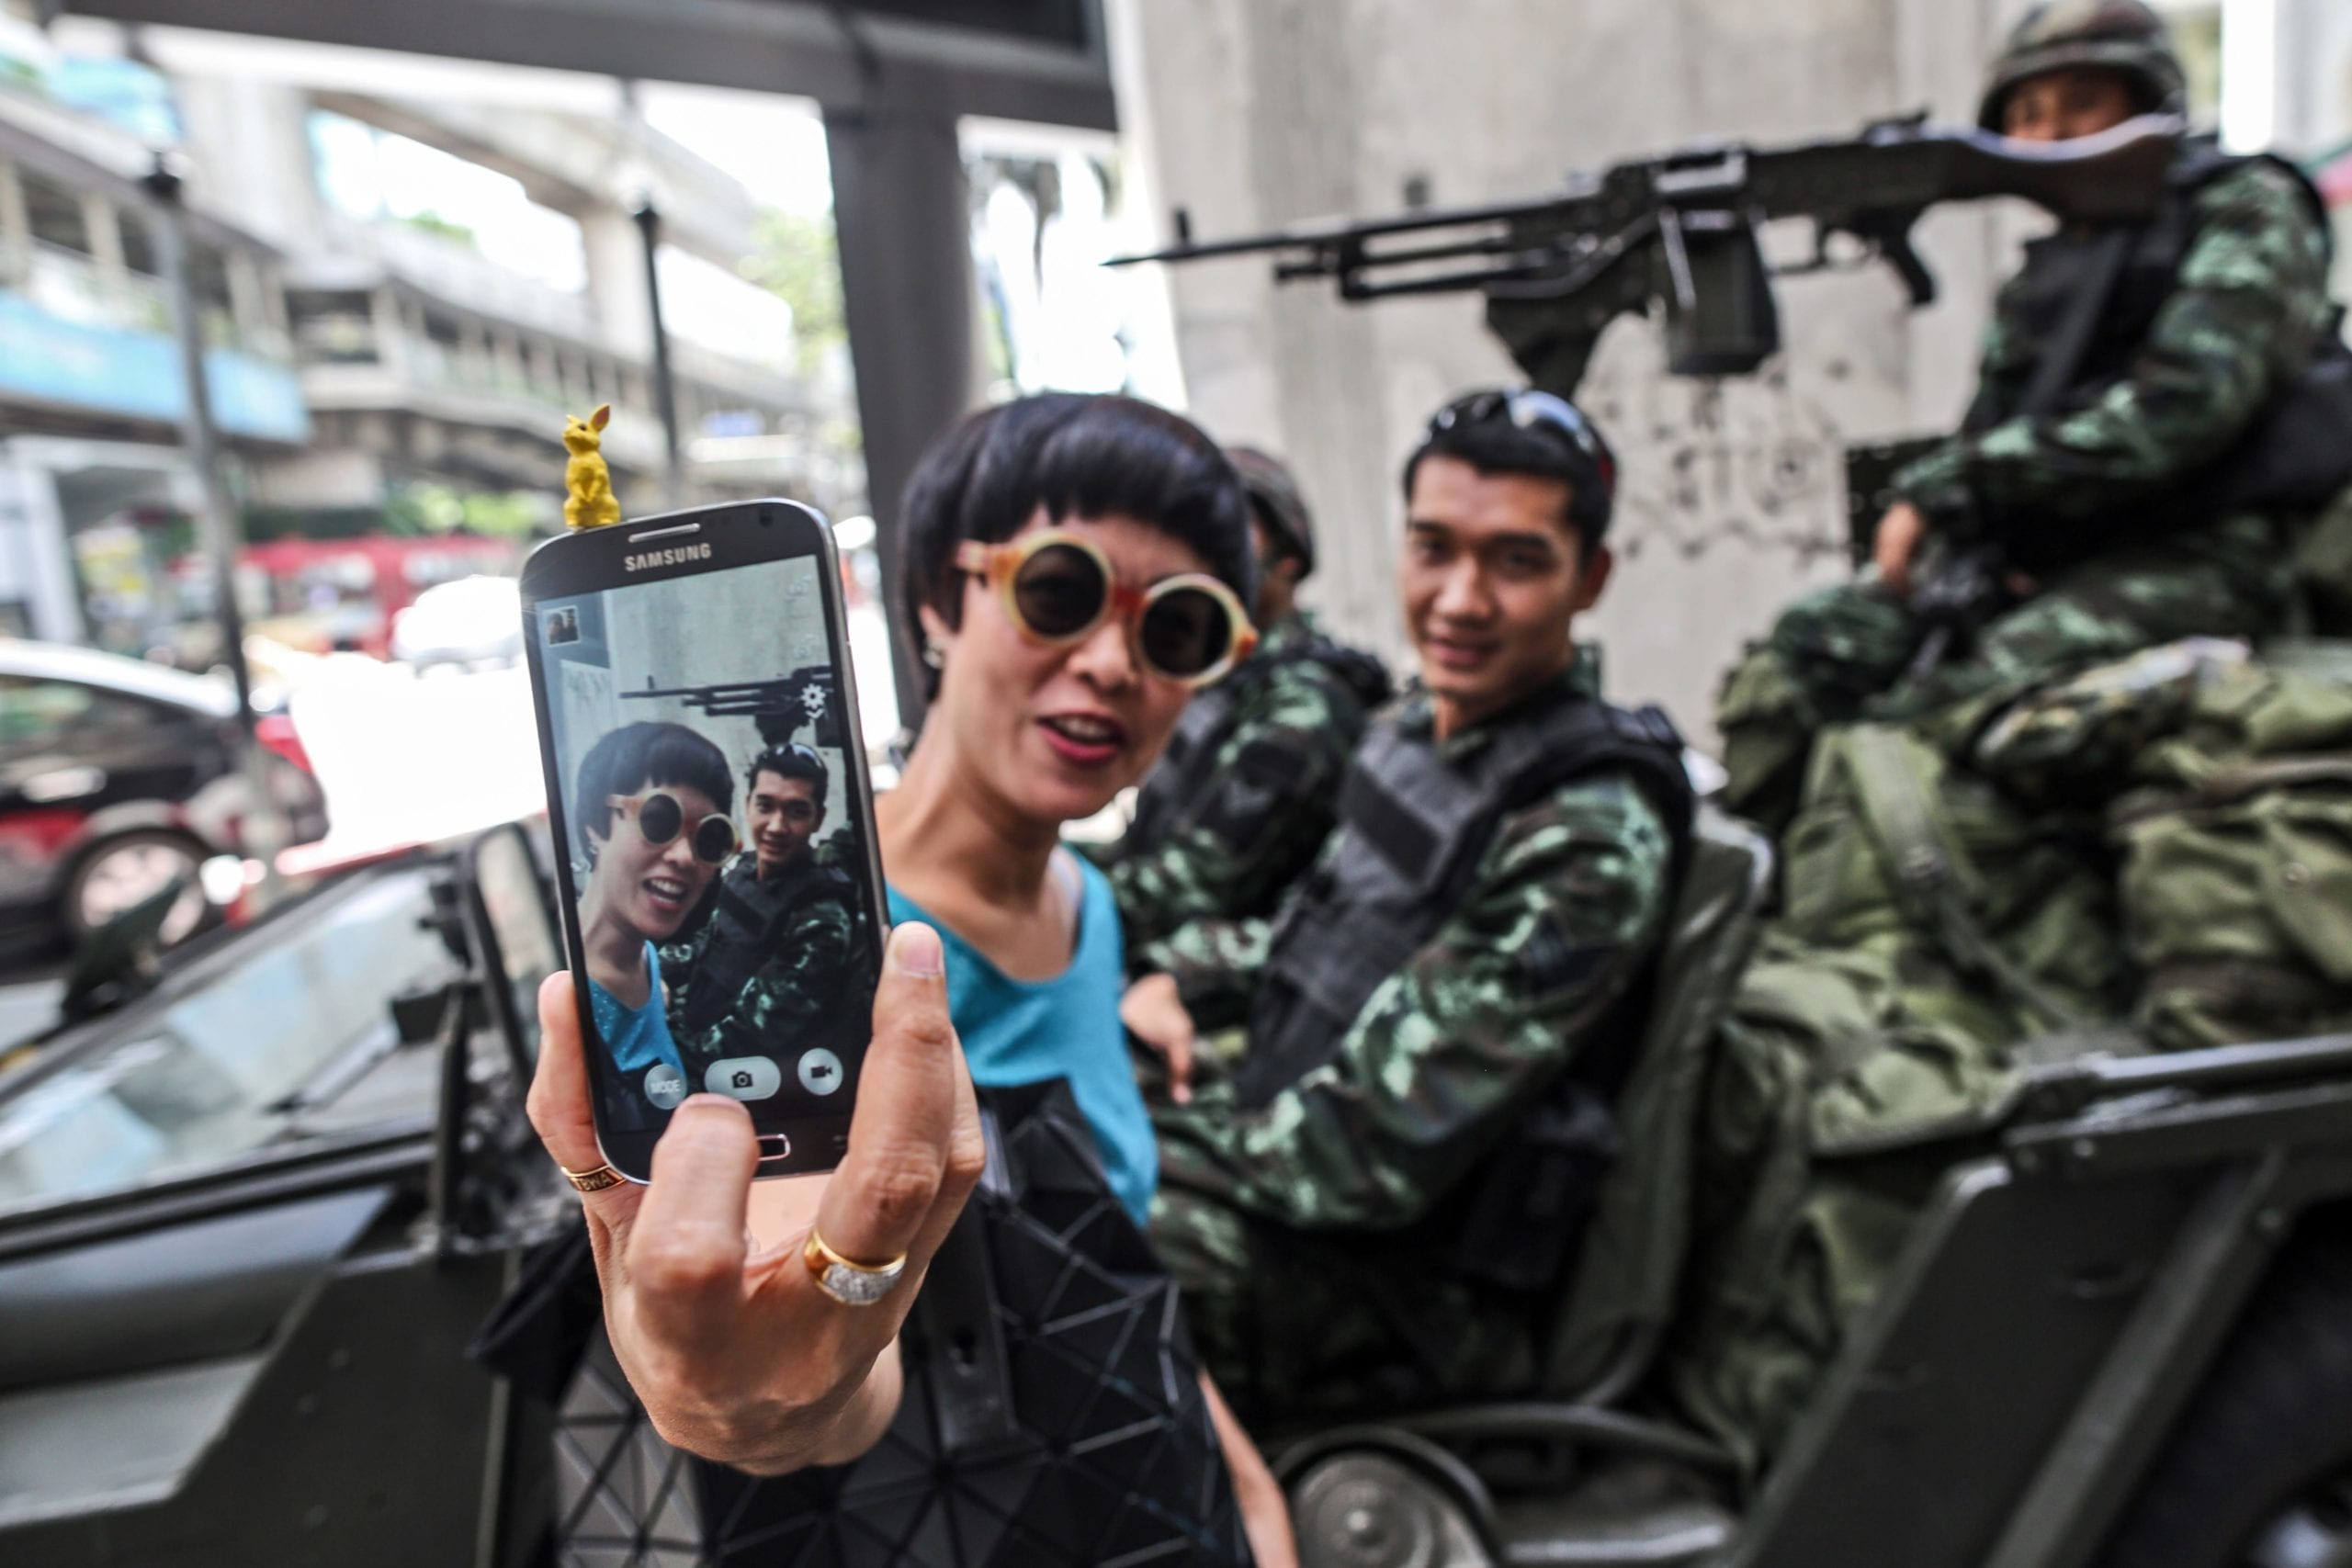 A women takes a selfie picture with Royal Thai Army soldiers stationed at the Ratchaprasong intersection, as martial law is imposed, in Bangkok, Thailand, on Tuesday, May 20, 2014.